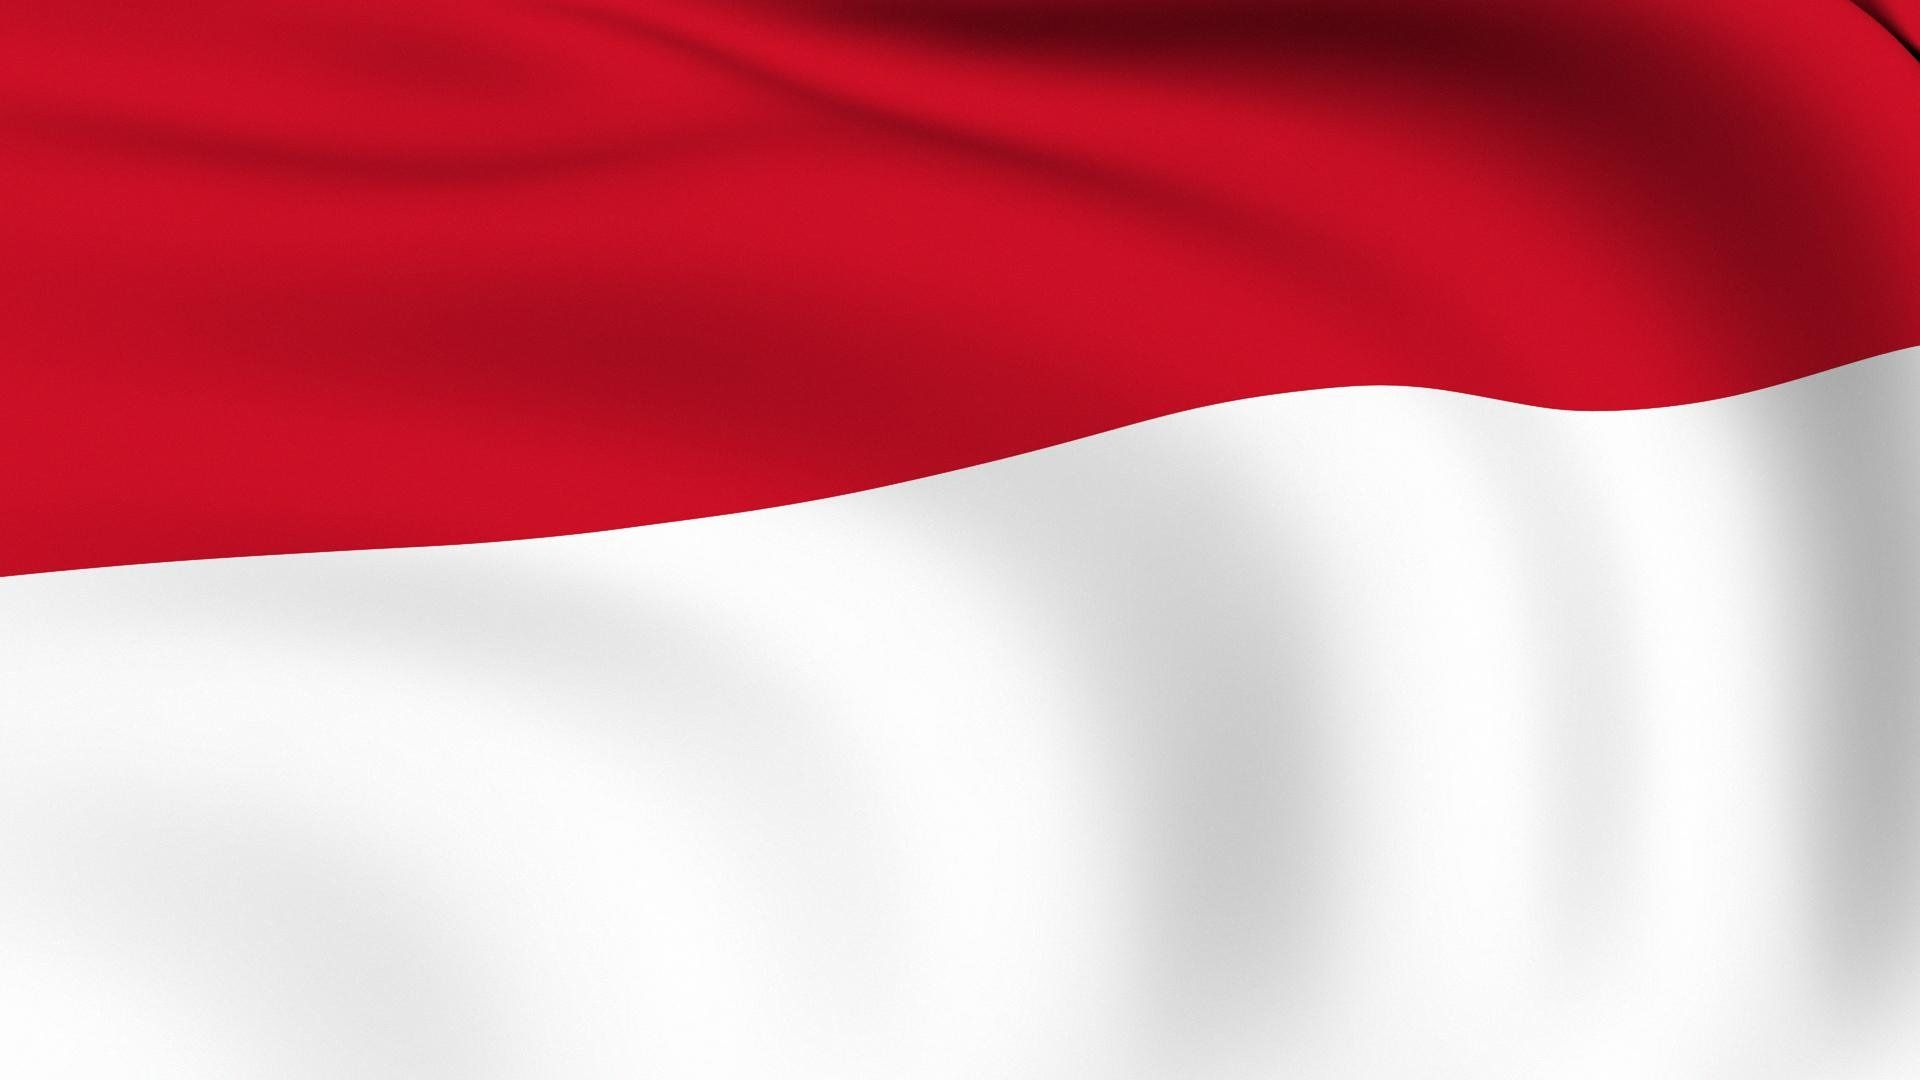 Free download Indonesia Flag Wallpapers Top Indonesia Flag ...